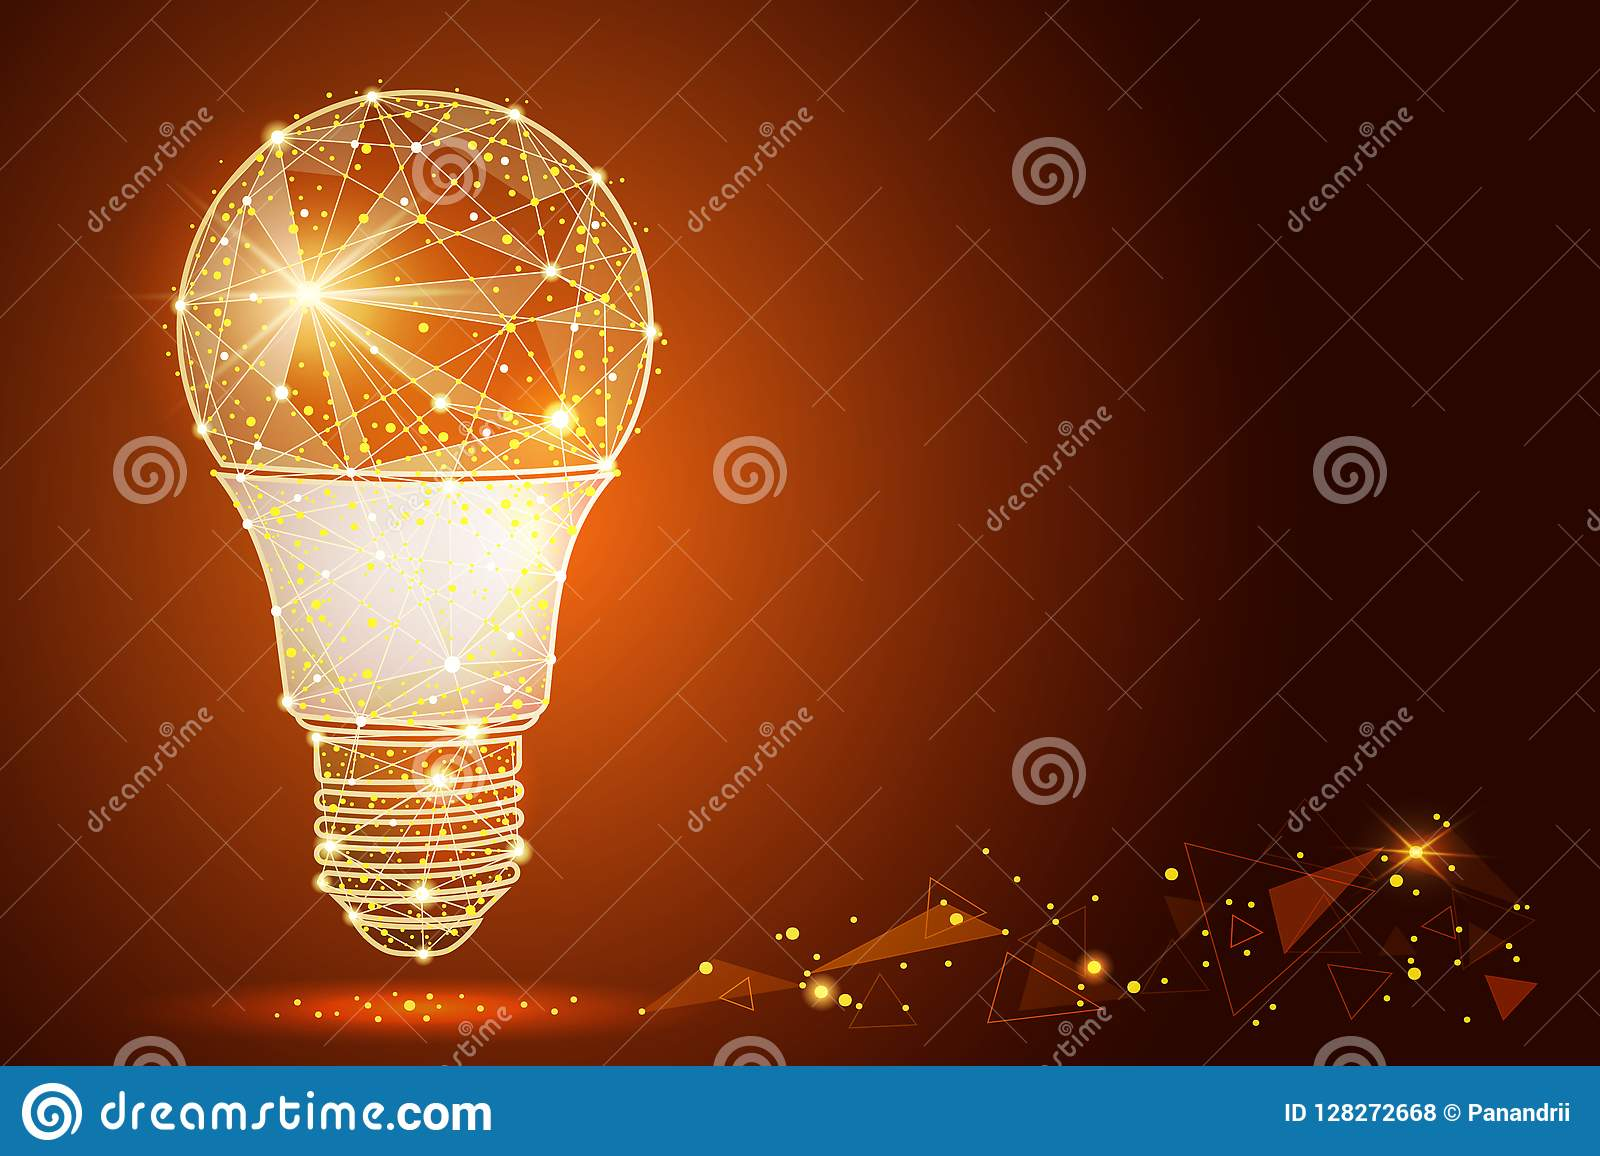 Logo light bulb abstract design in low poly style in the form of